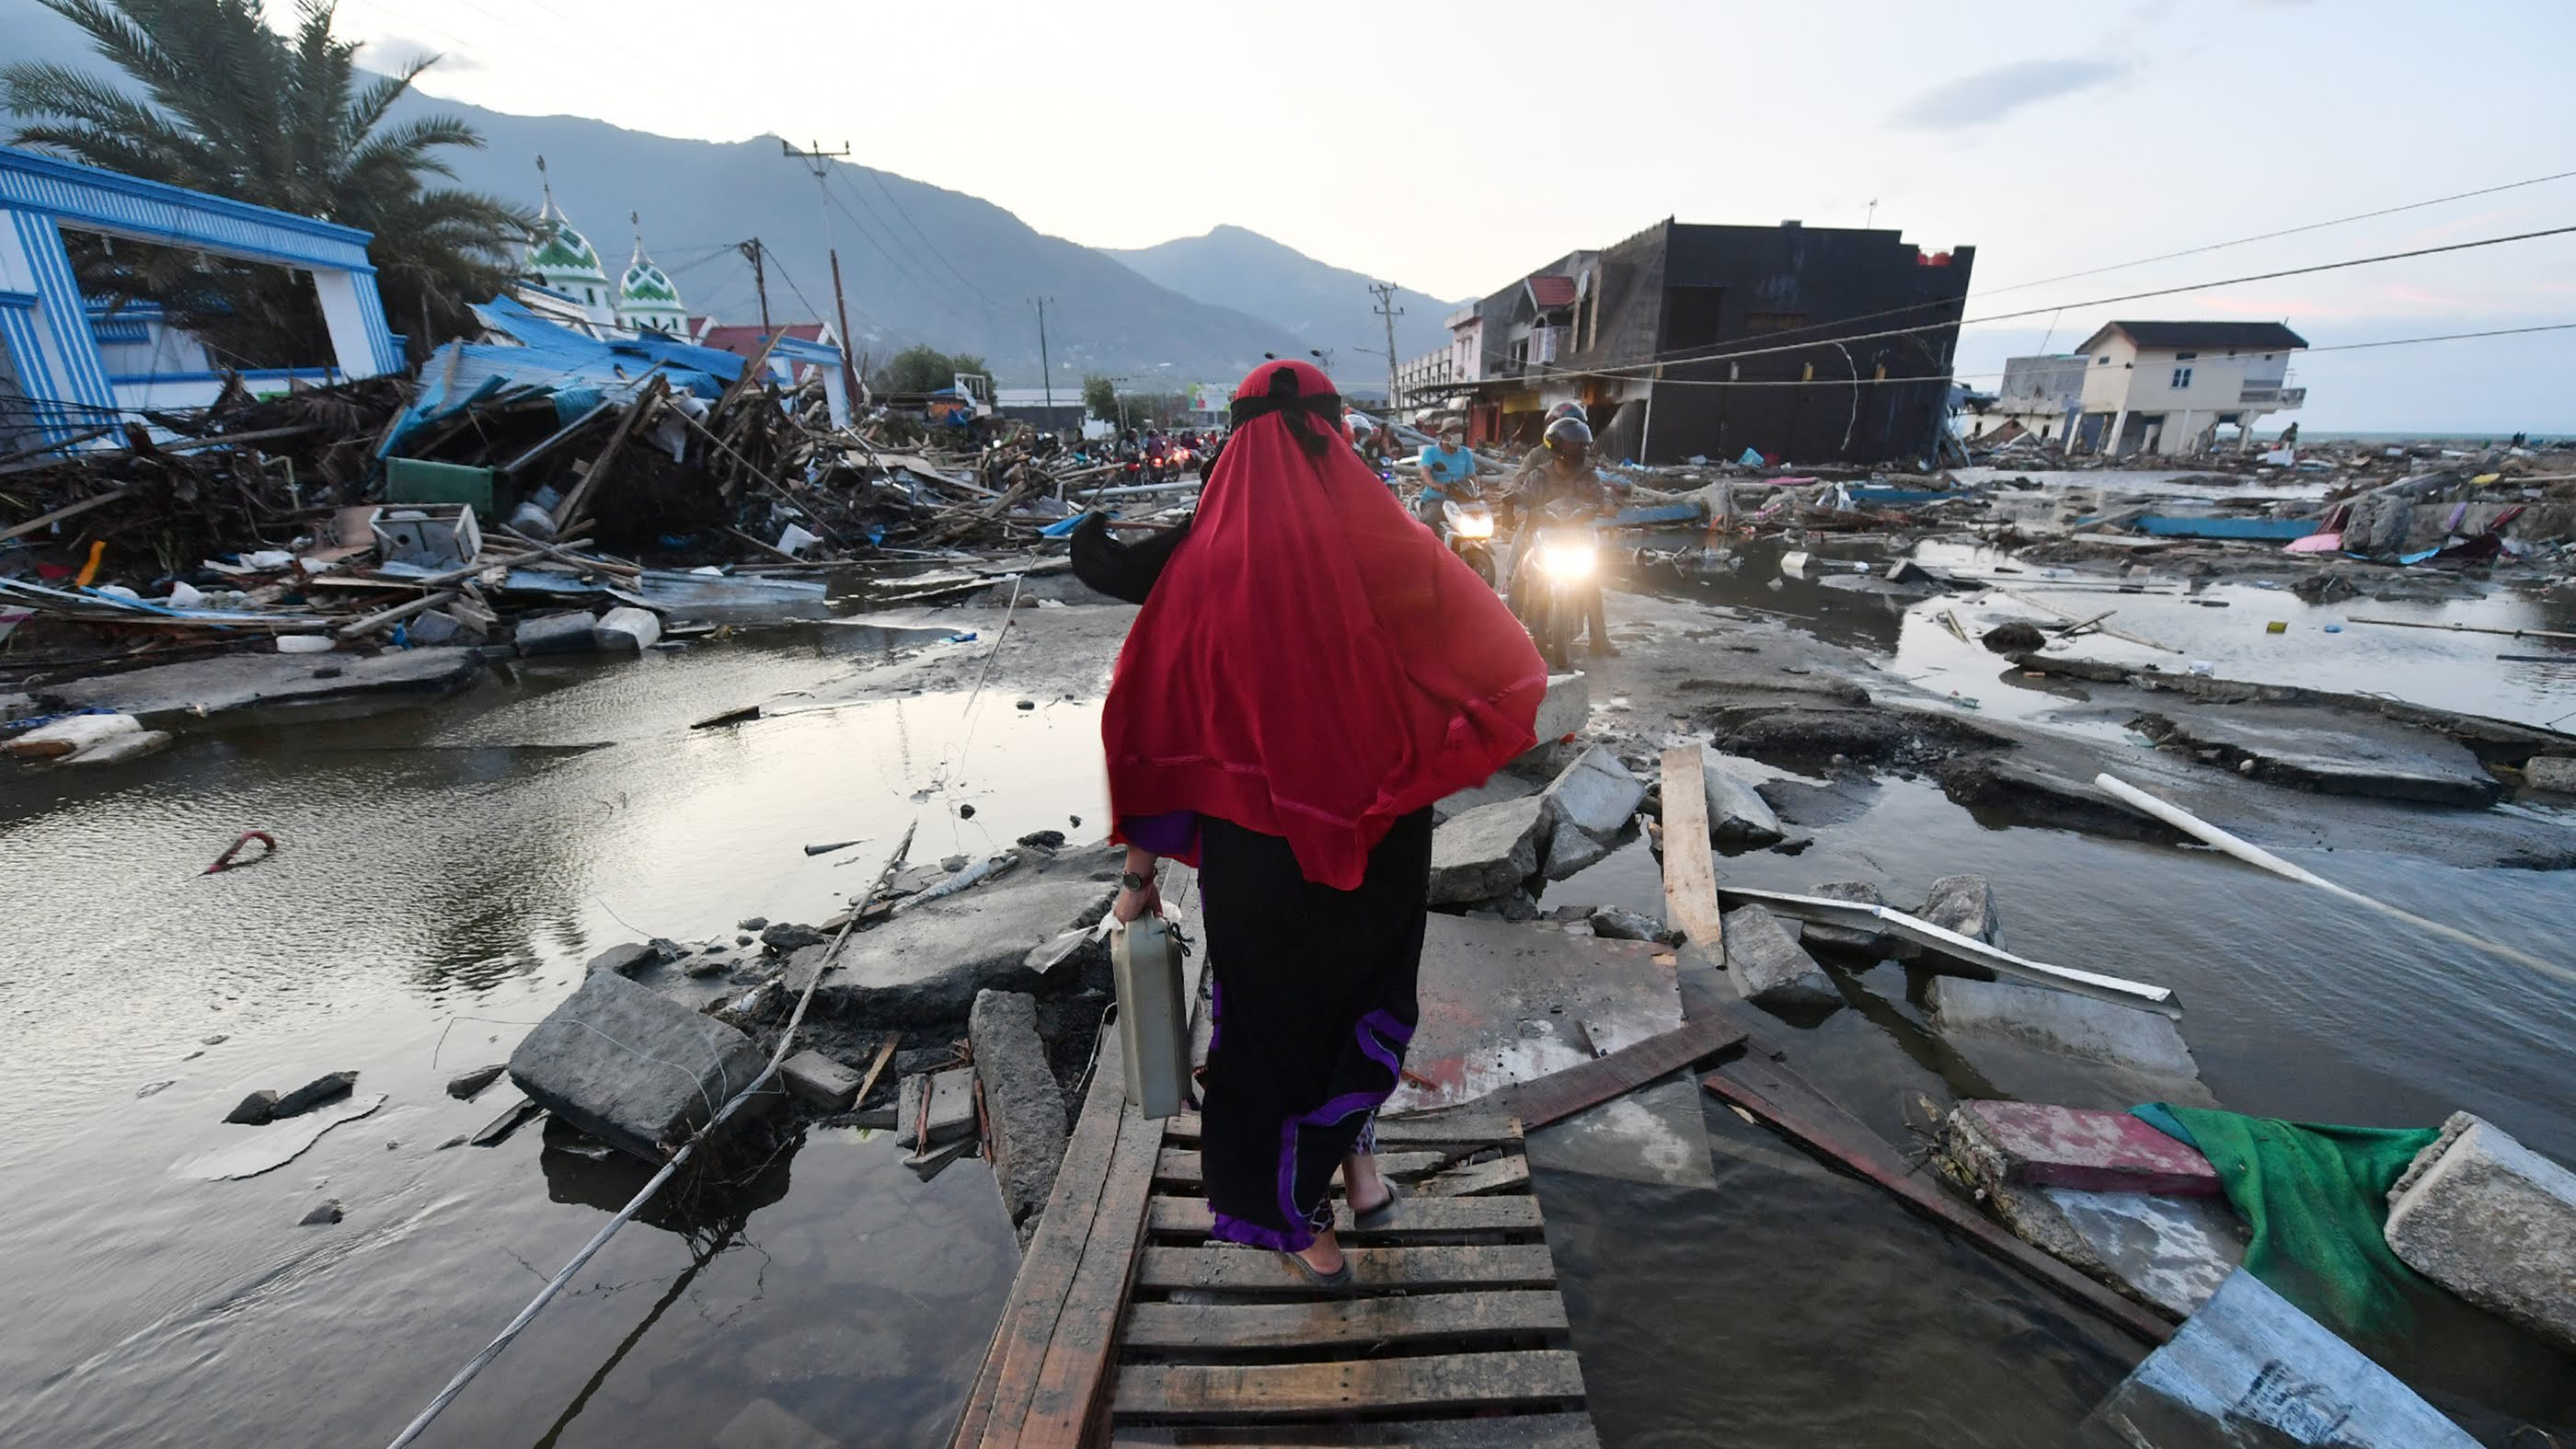 A woman walks through a devastated area in Palu, Indonesia's Central Sulawesi on October 1, 2018, after an earthquake and tsunami hit the area on September 28.      (Adek Berry/AFP/Getty Images)